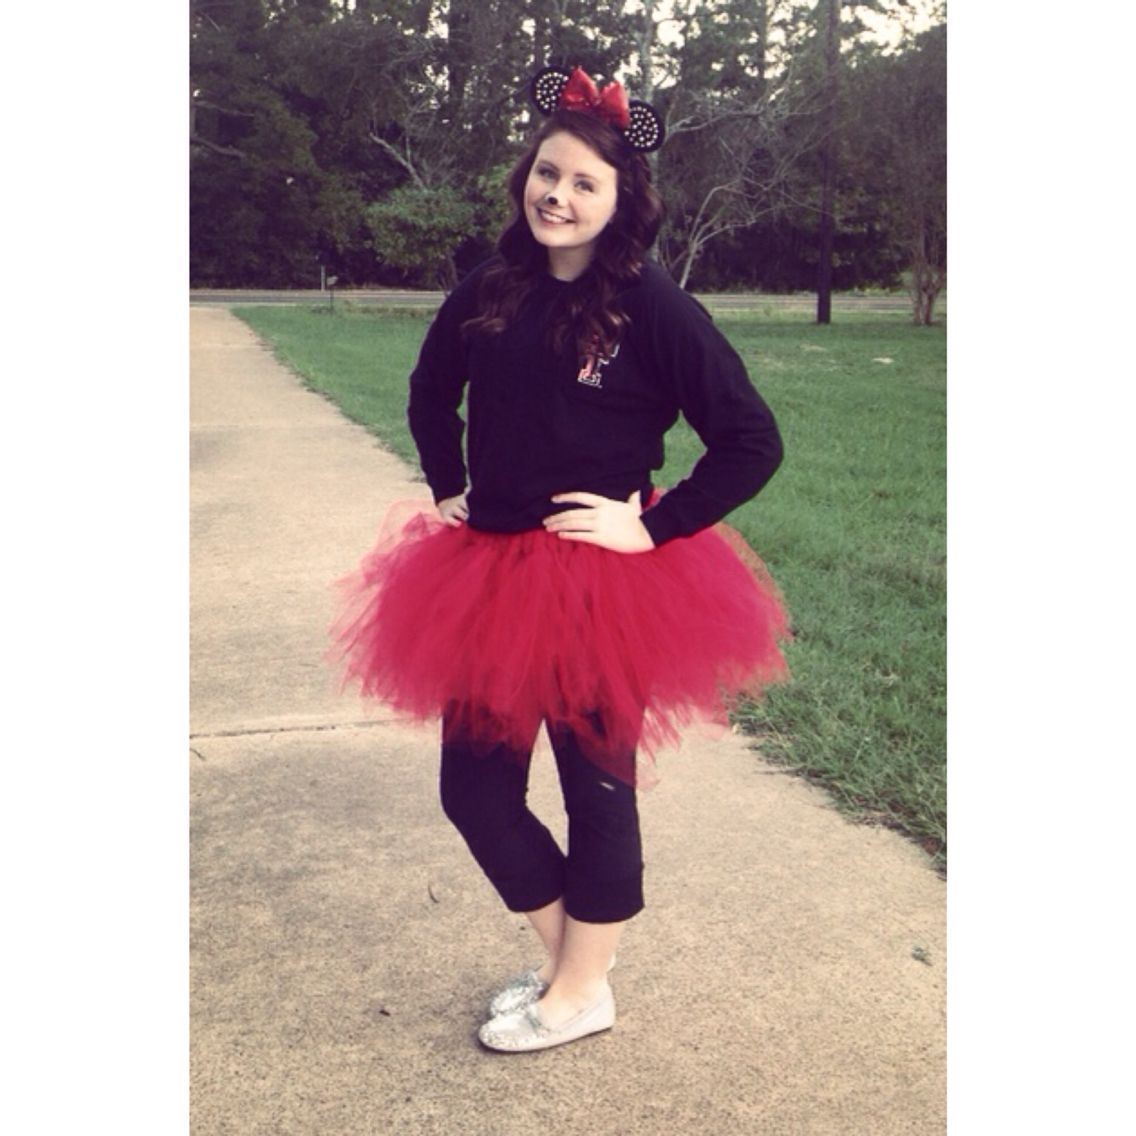 Diy minnie mouse halloween costume for all ageschildren teens diy minnie mouse halloween costume for all ageschildren teens adults solutioingenieria Choice Image